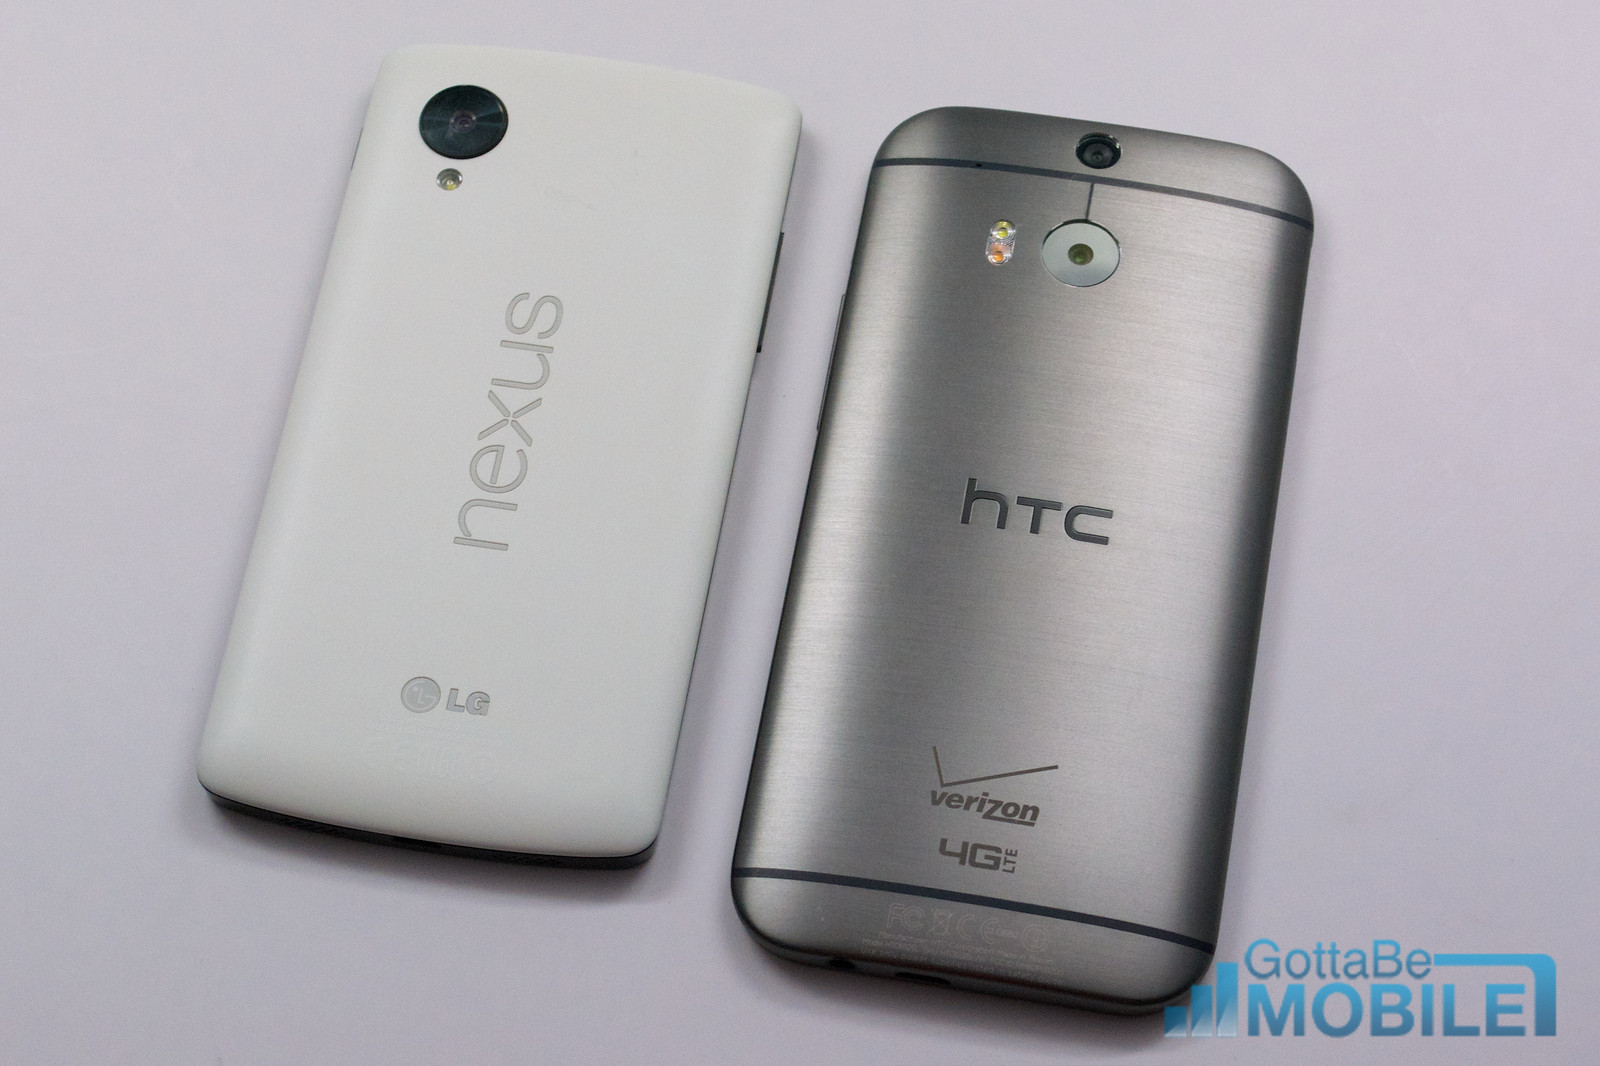 New HTC One (M8) vs. Nexus 5: 5 Key Differences